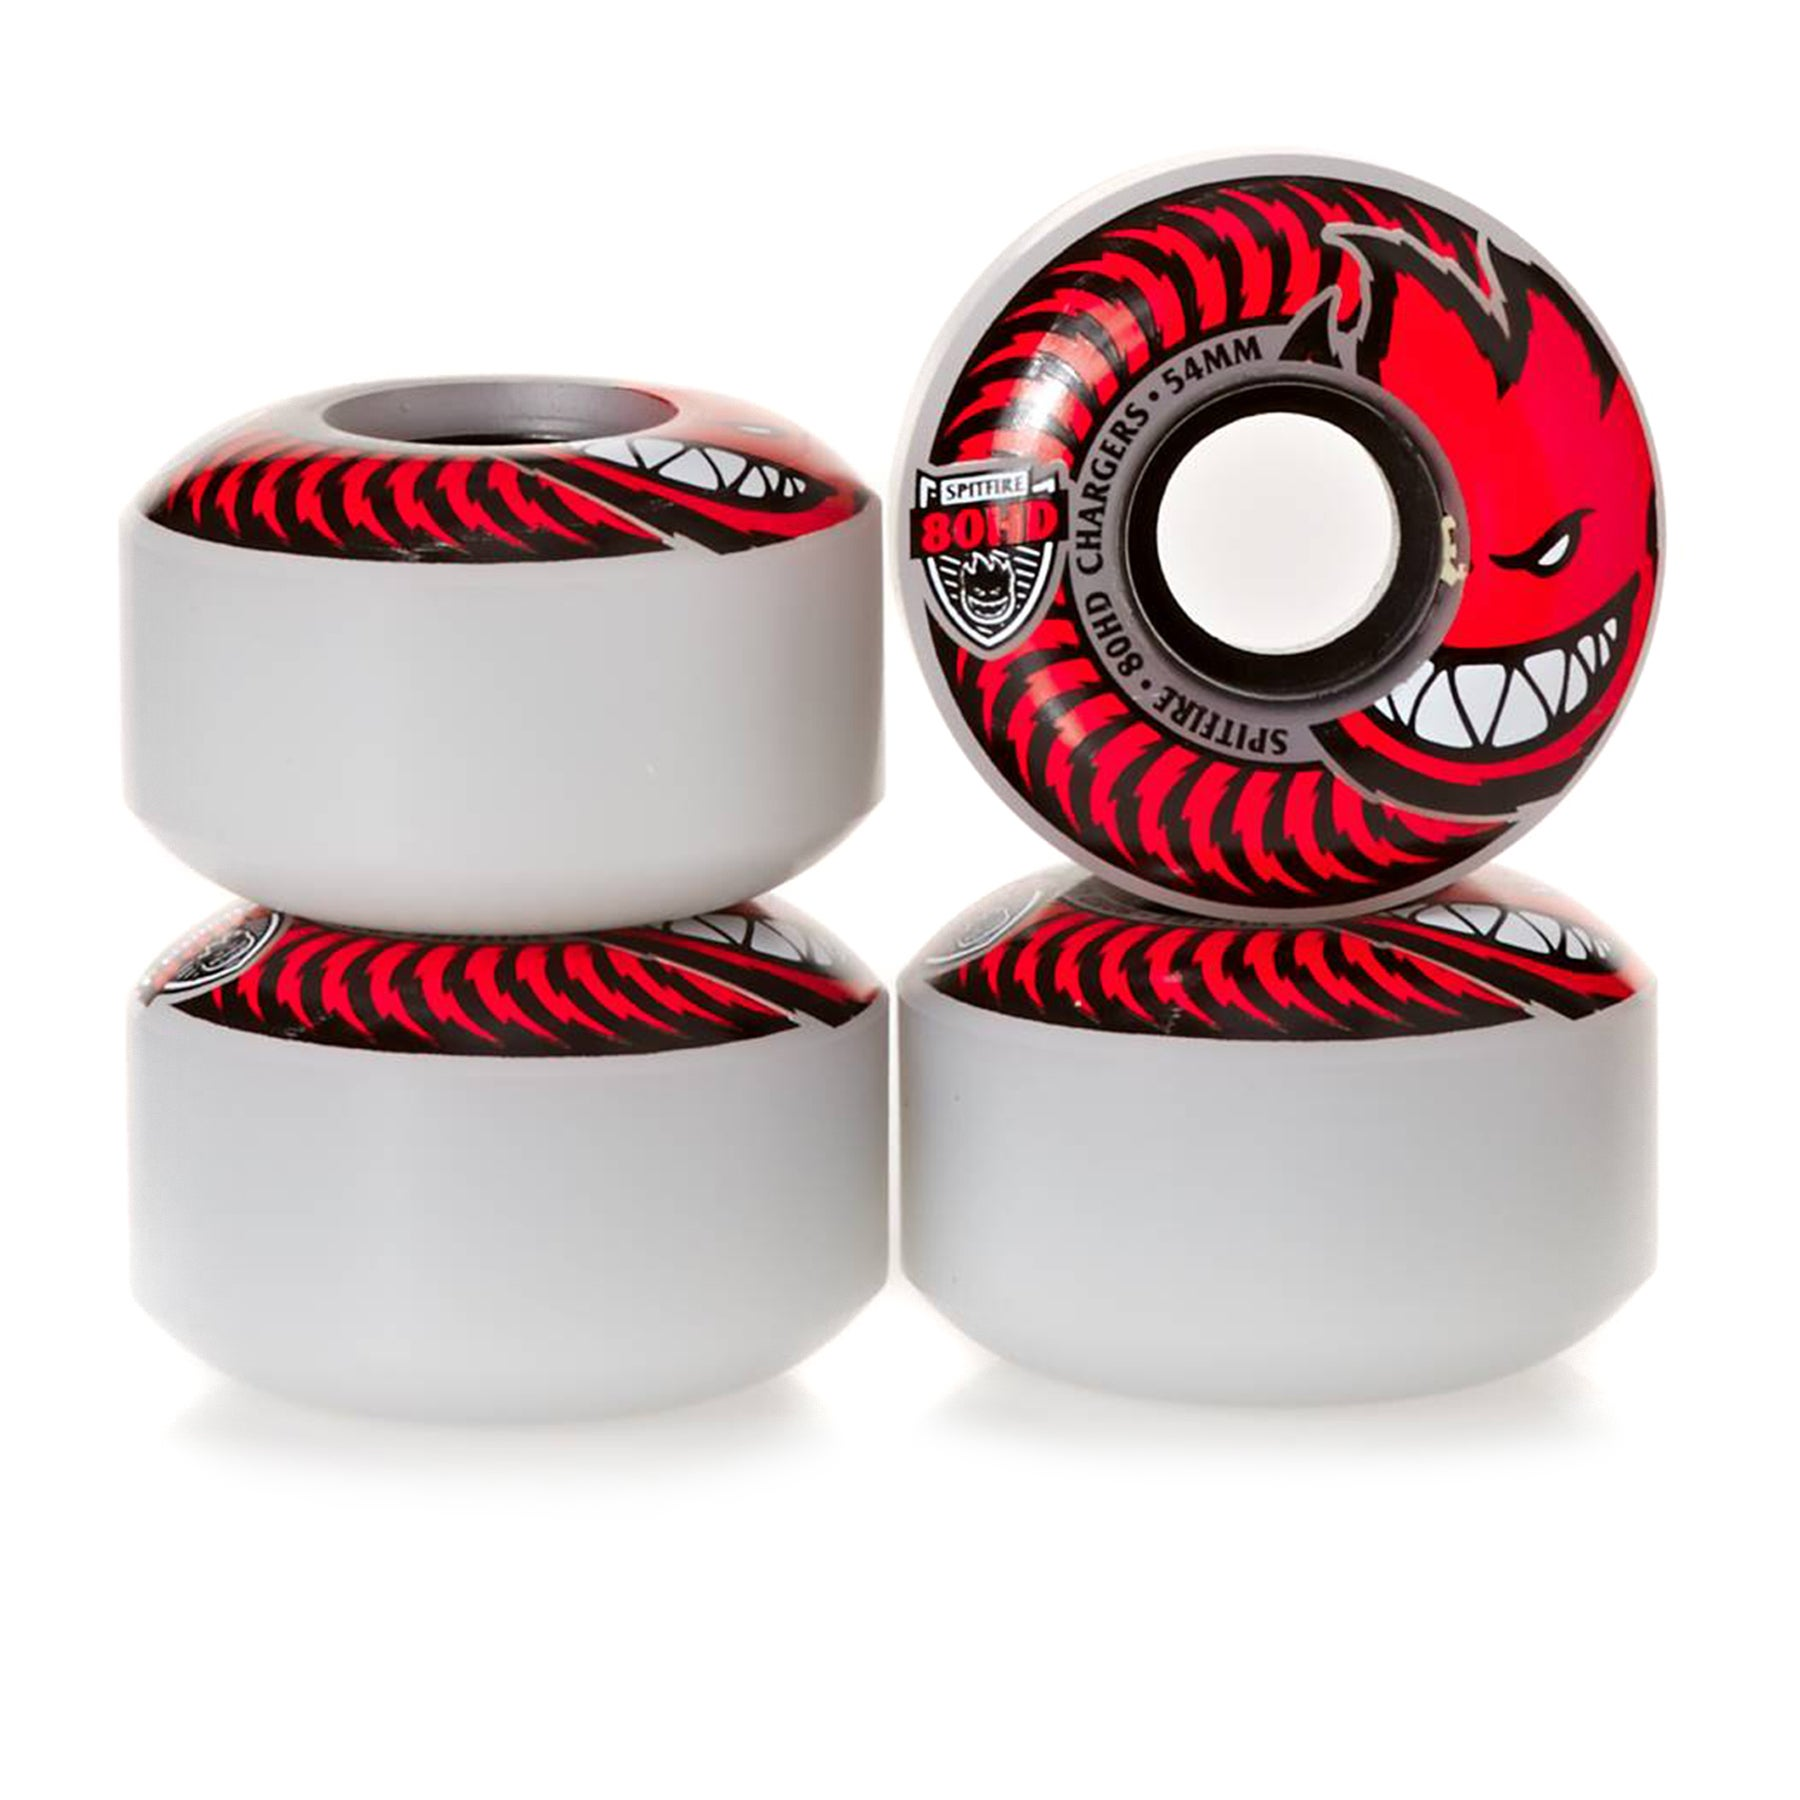 Spitfire Soft 80hd Chargers Classic 54 Mm Skateboard Wheel - Clear